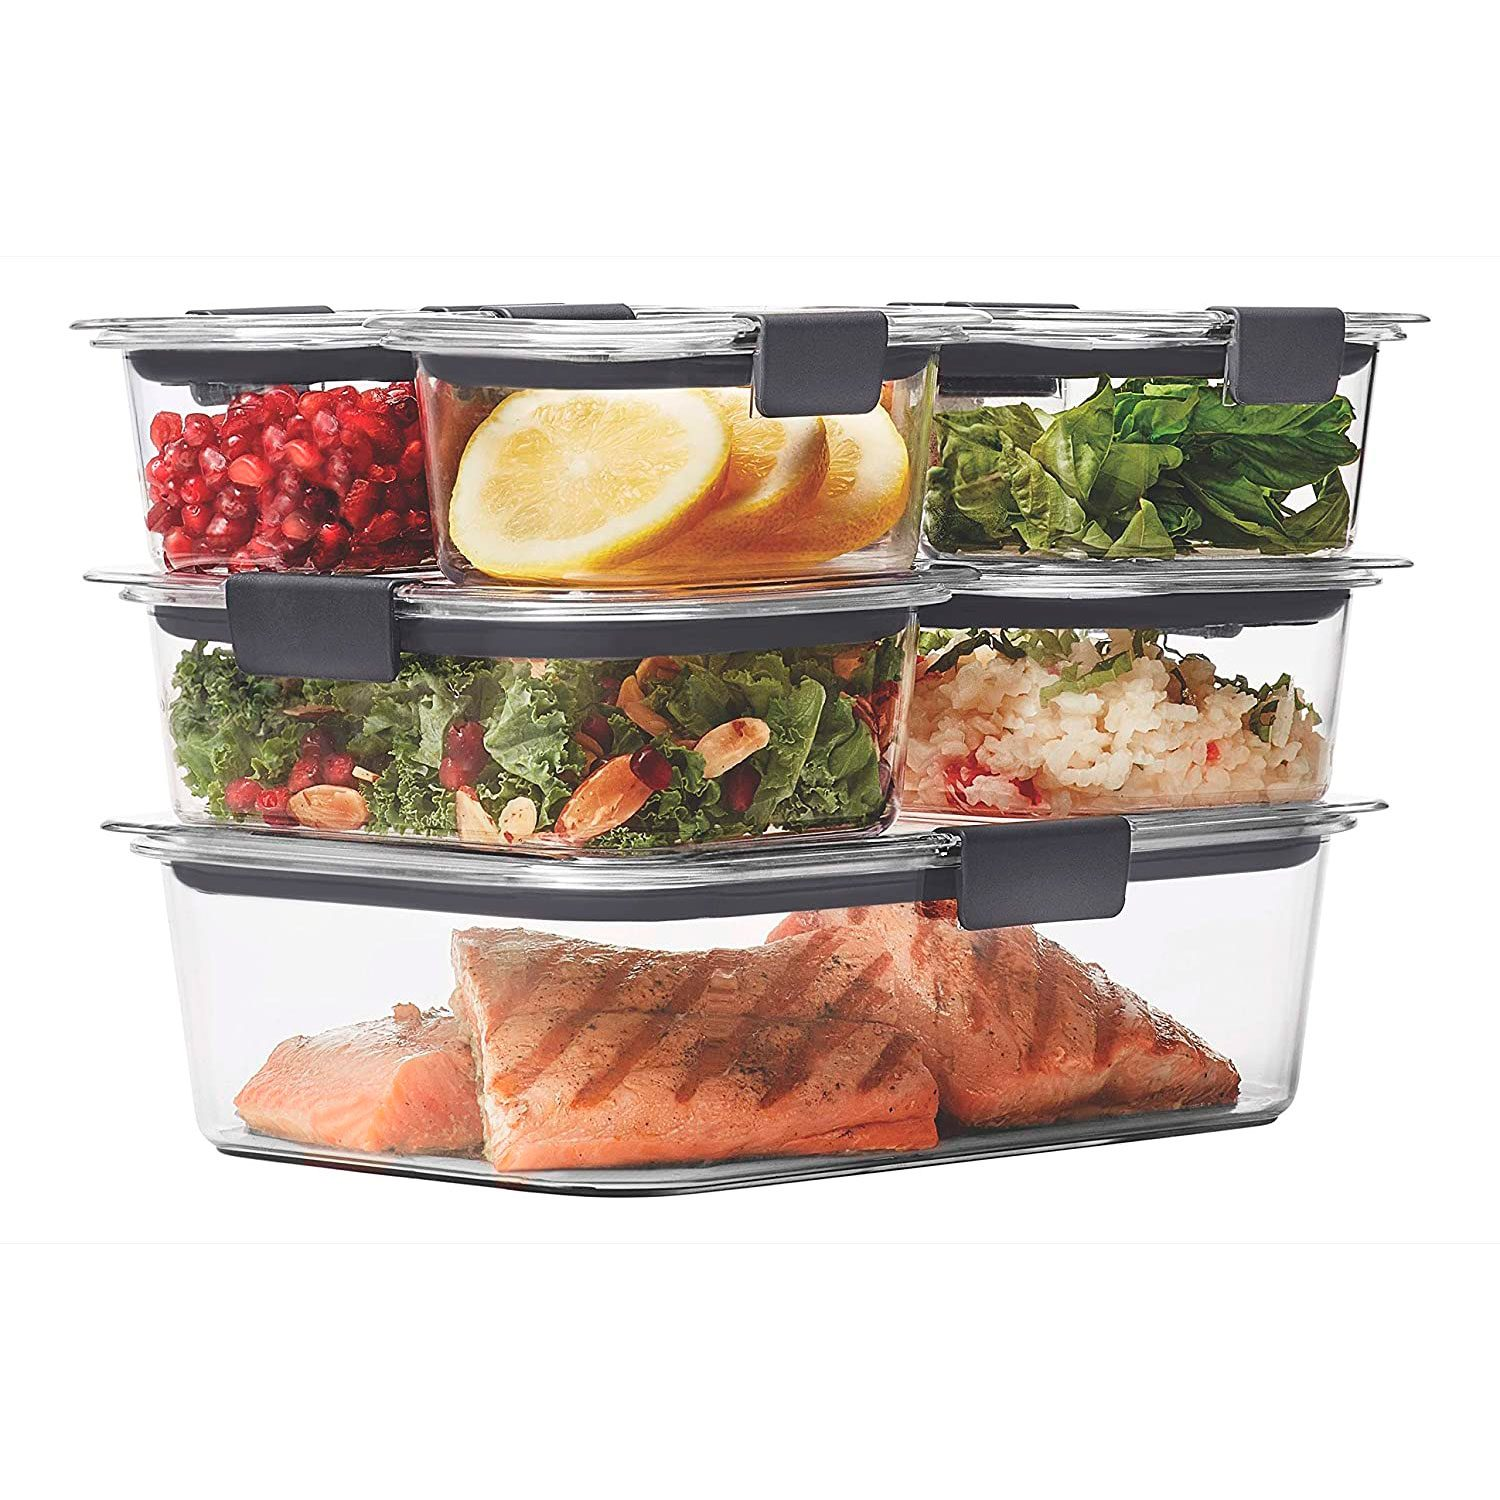 Rubbermaid Brilliance Leak Proof Food Storage Containers With Airtight Lids